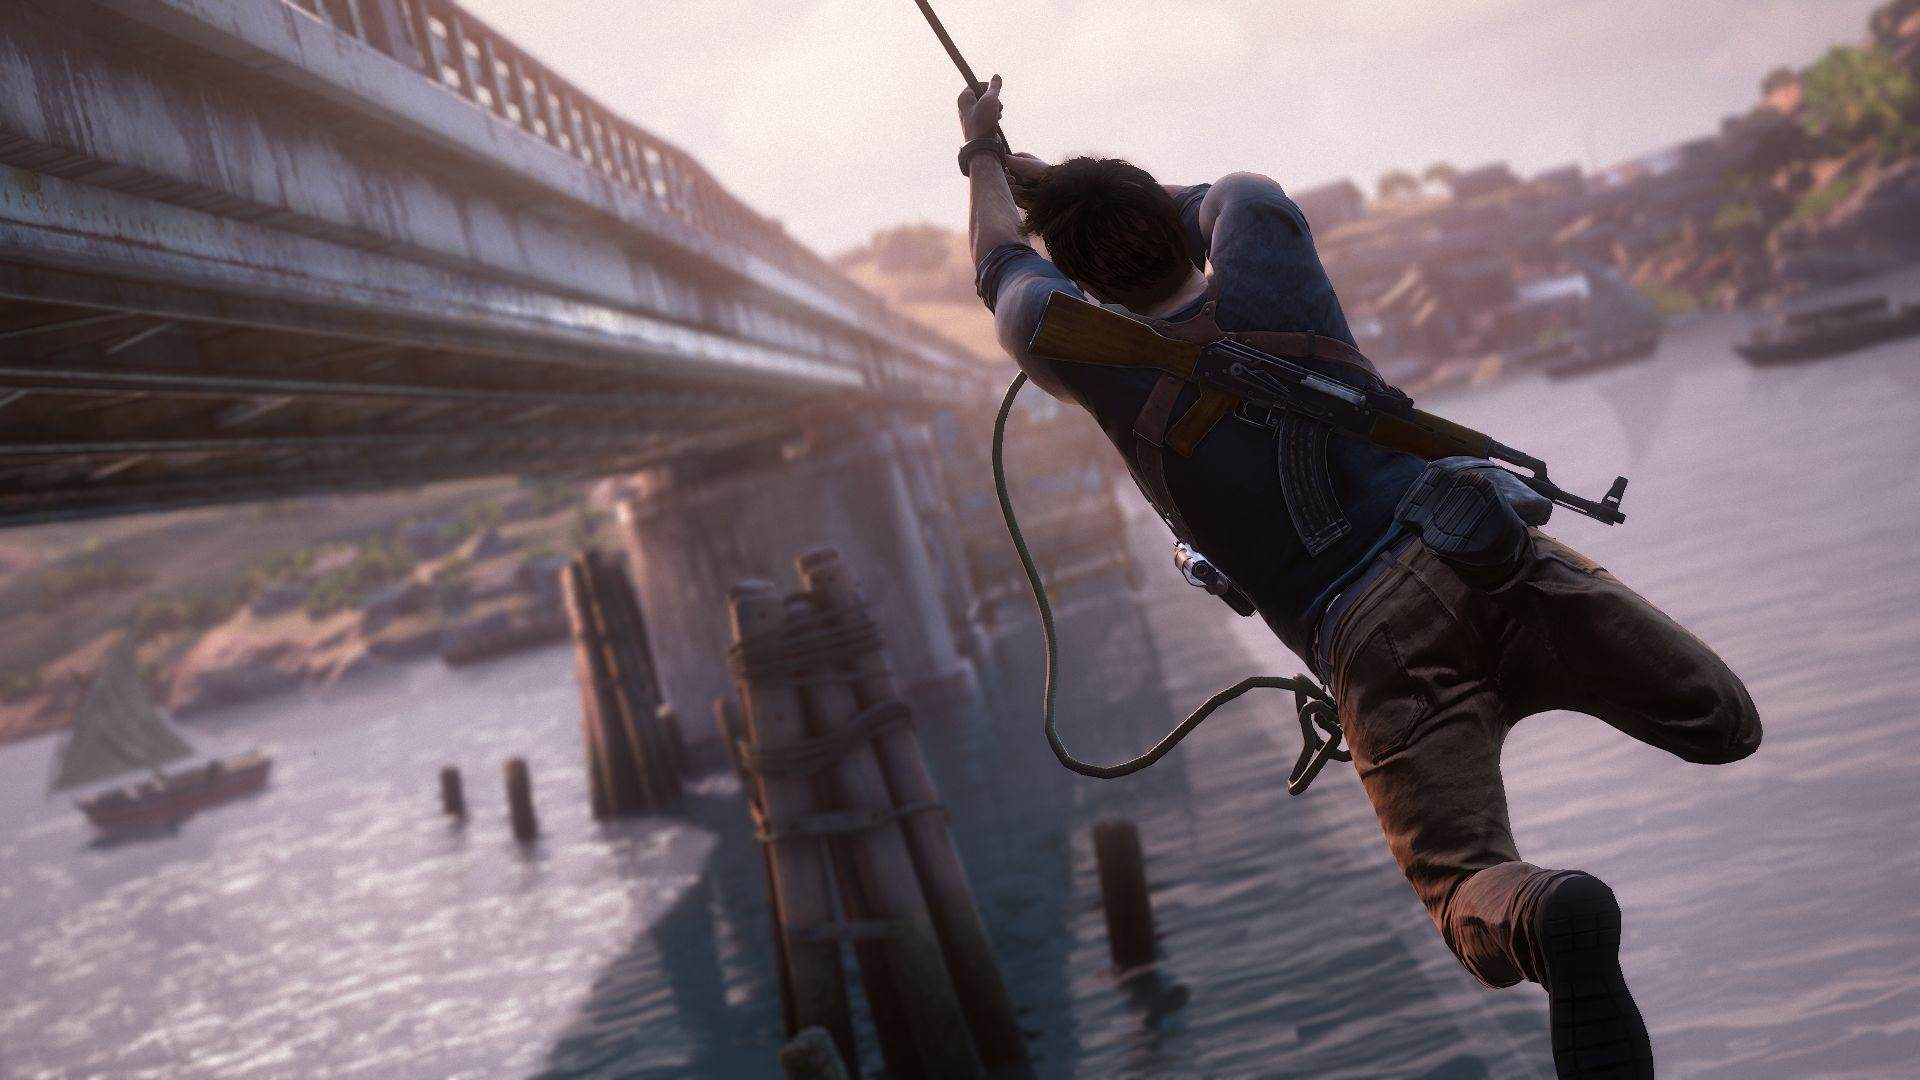 2759115 uncharted 4 drake rope bridge 1434429051 Uncharted 4s Story Changed 100% After New Directors Joined